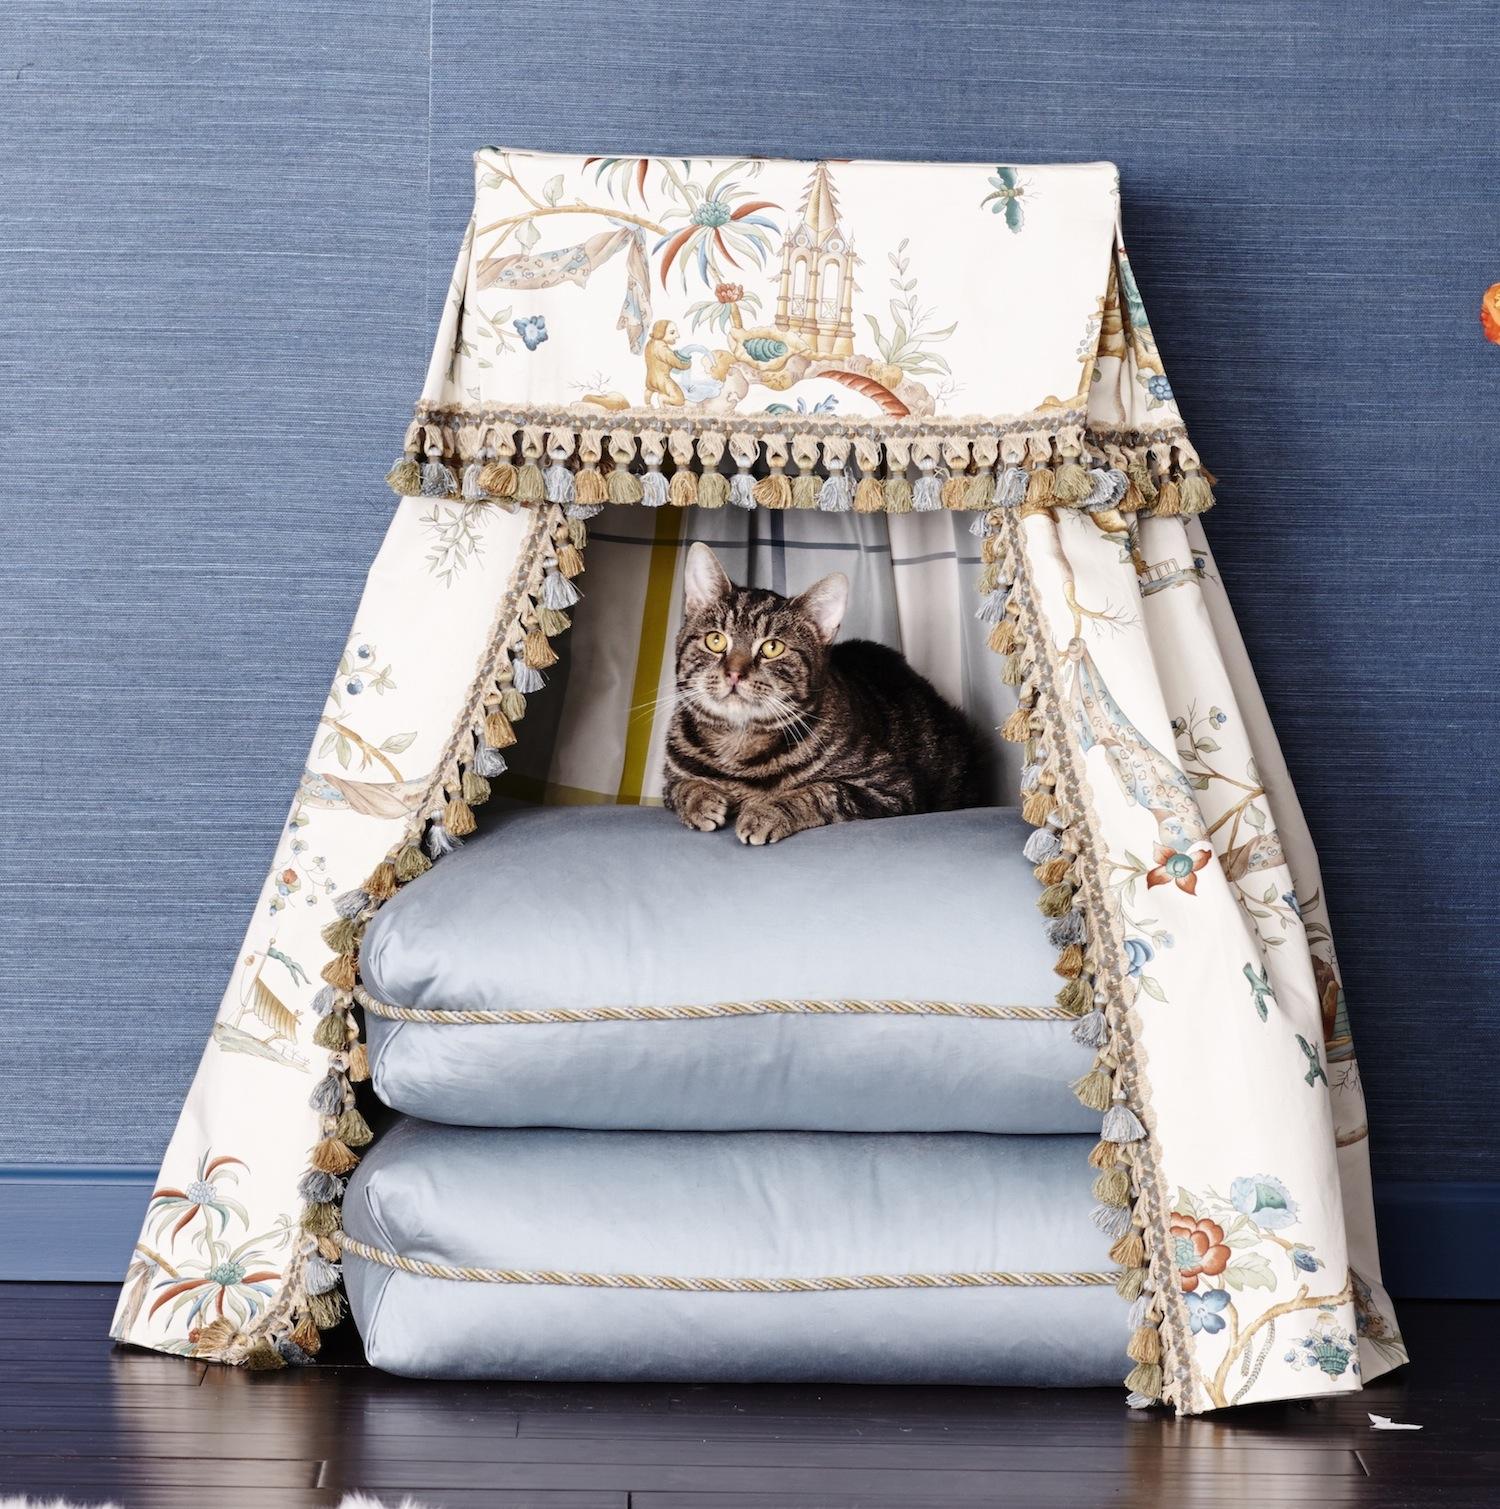 Designer Cat Beds Cat Beds For Charity Stellar Interior Design